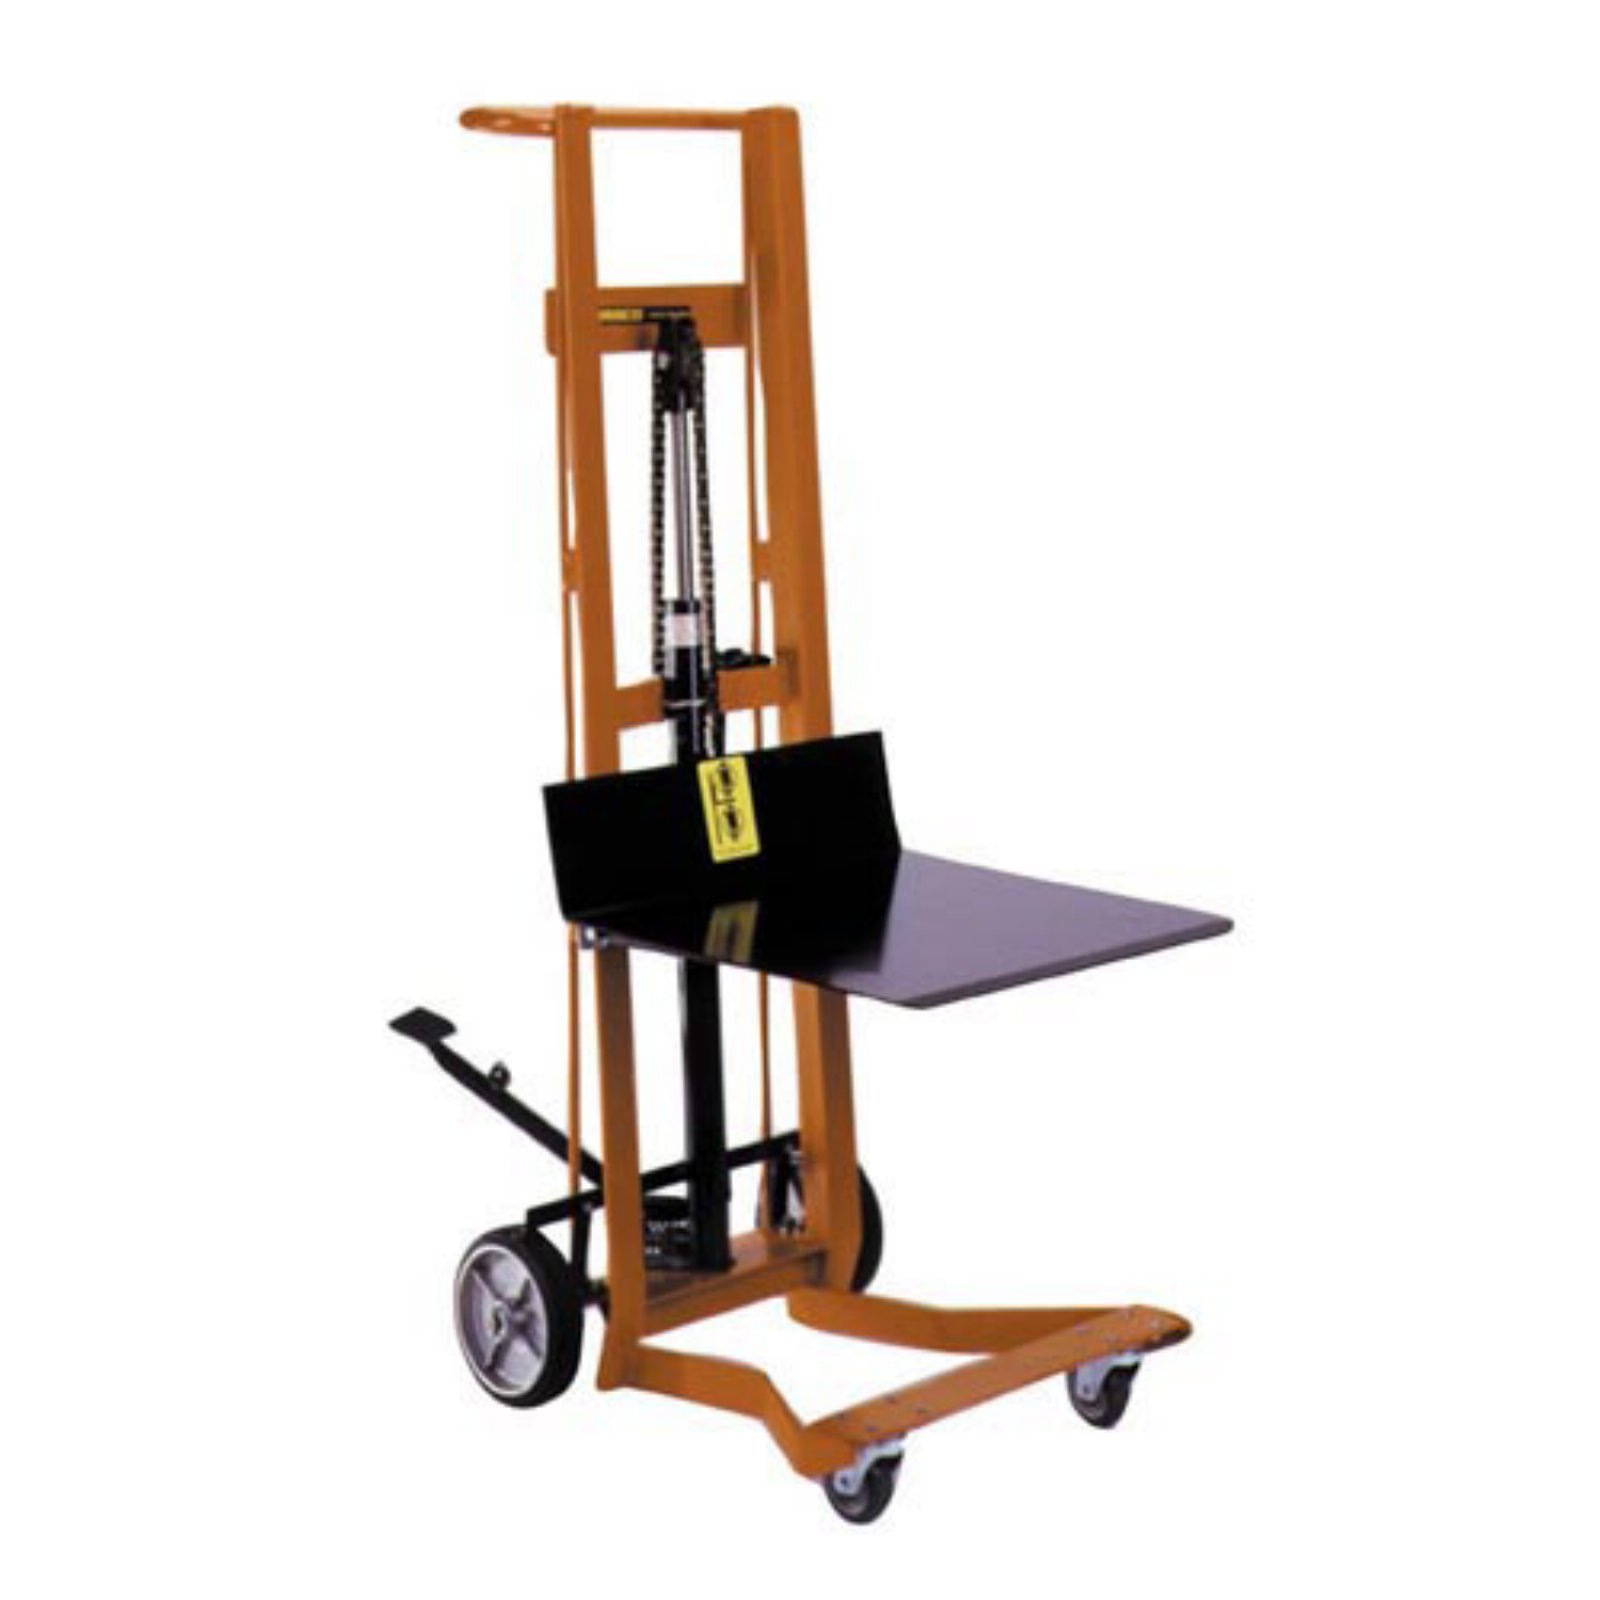 Wesco 4 Wheeled Hydraulic Lift